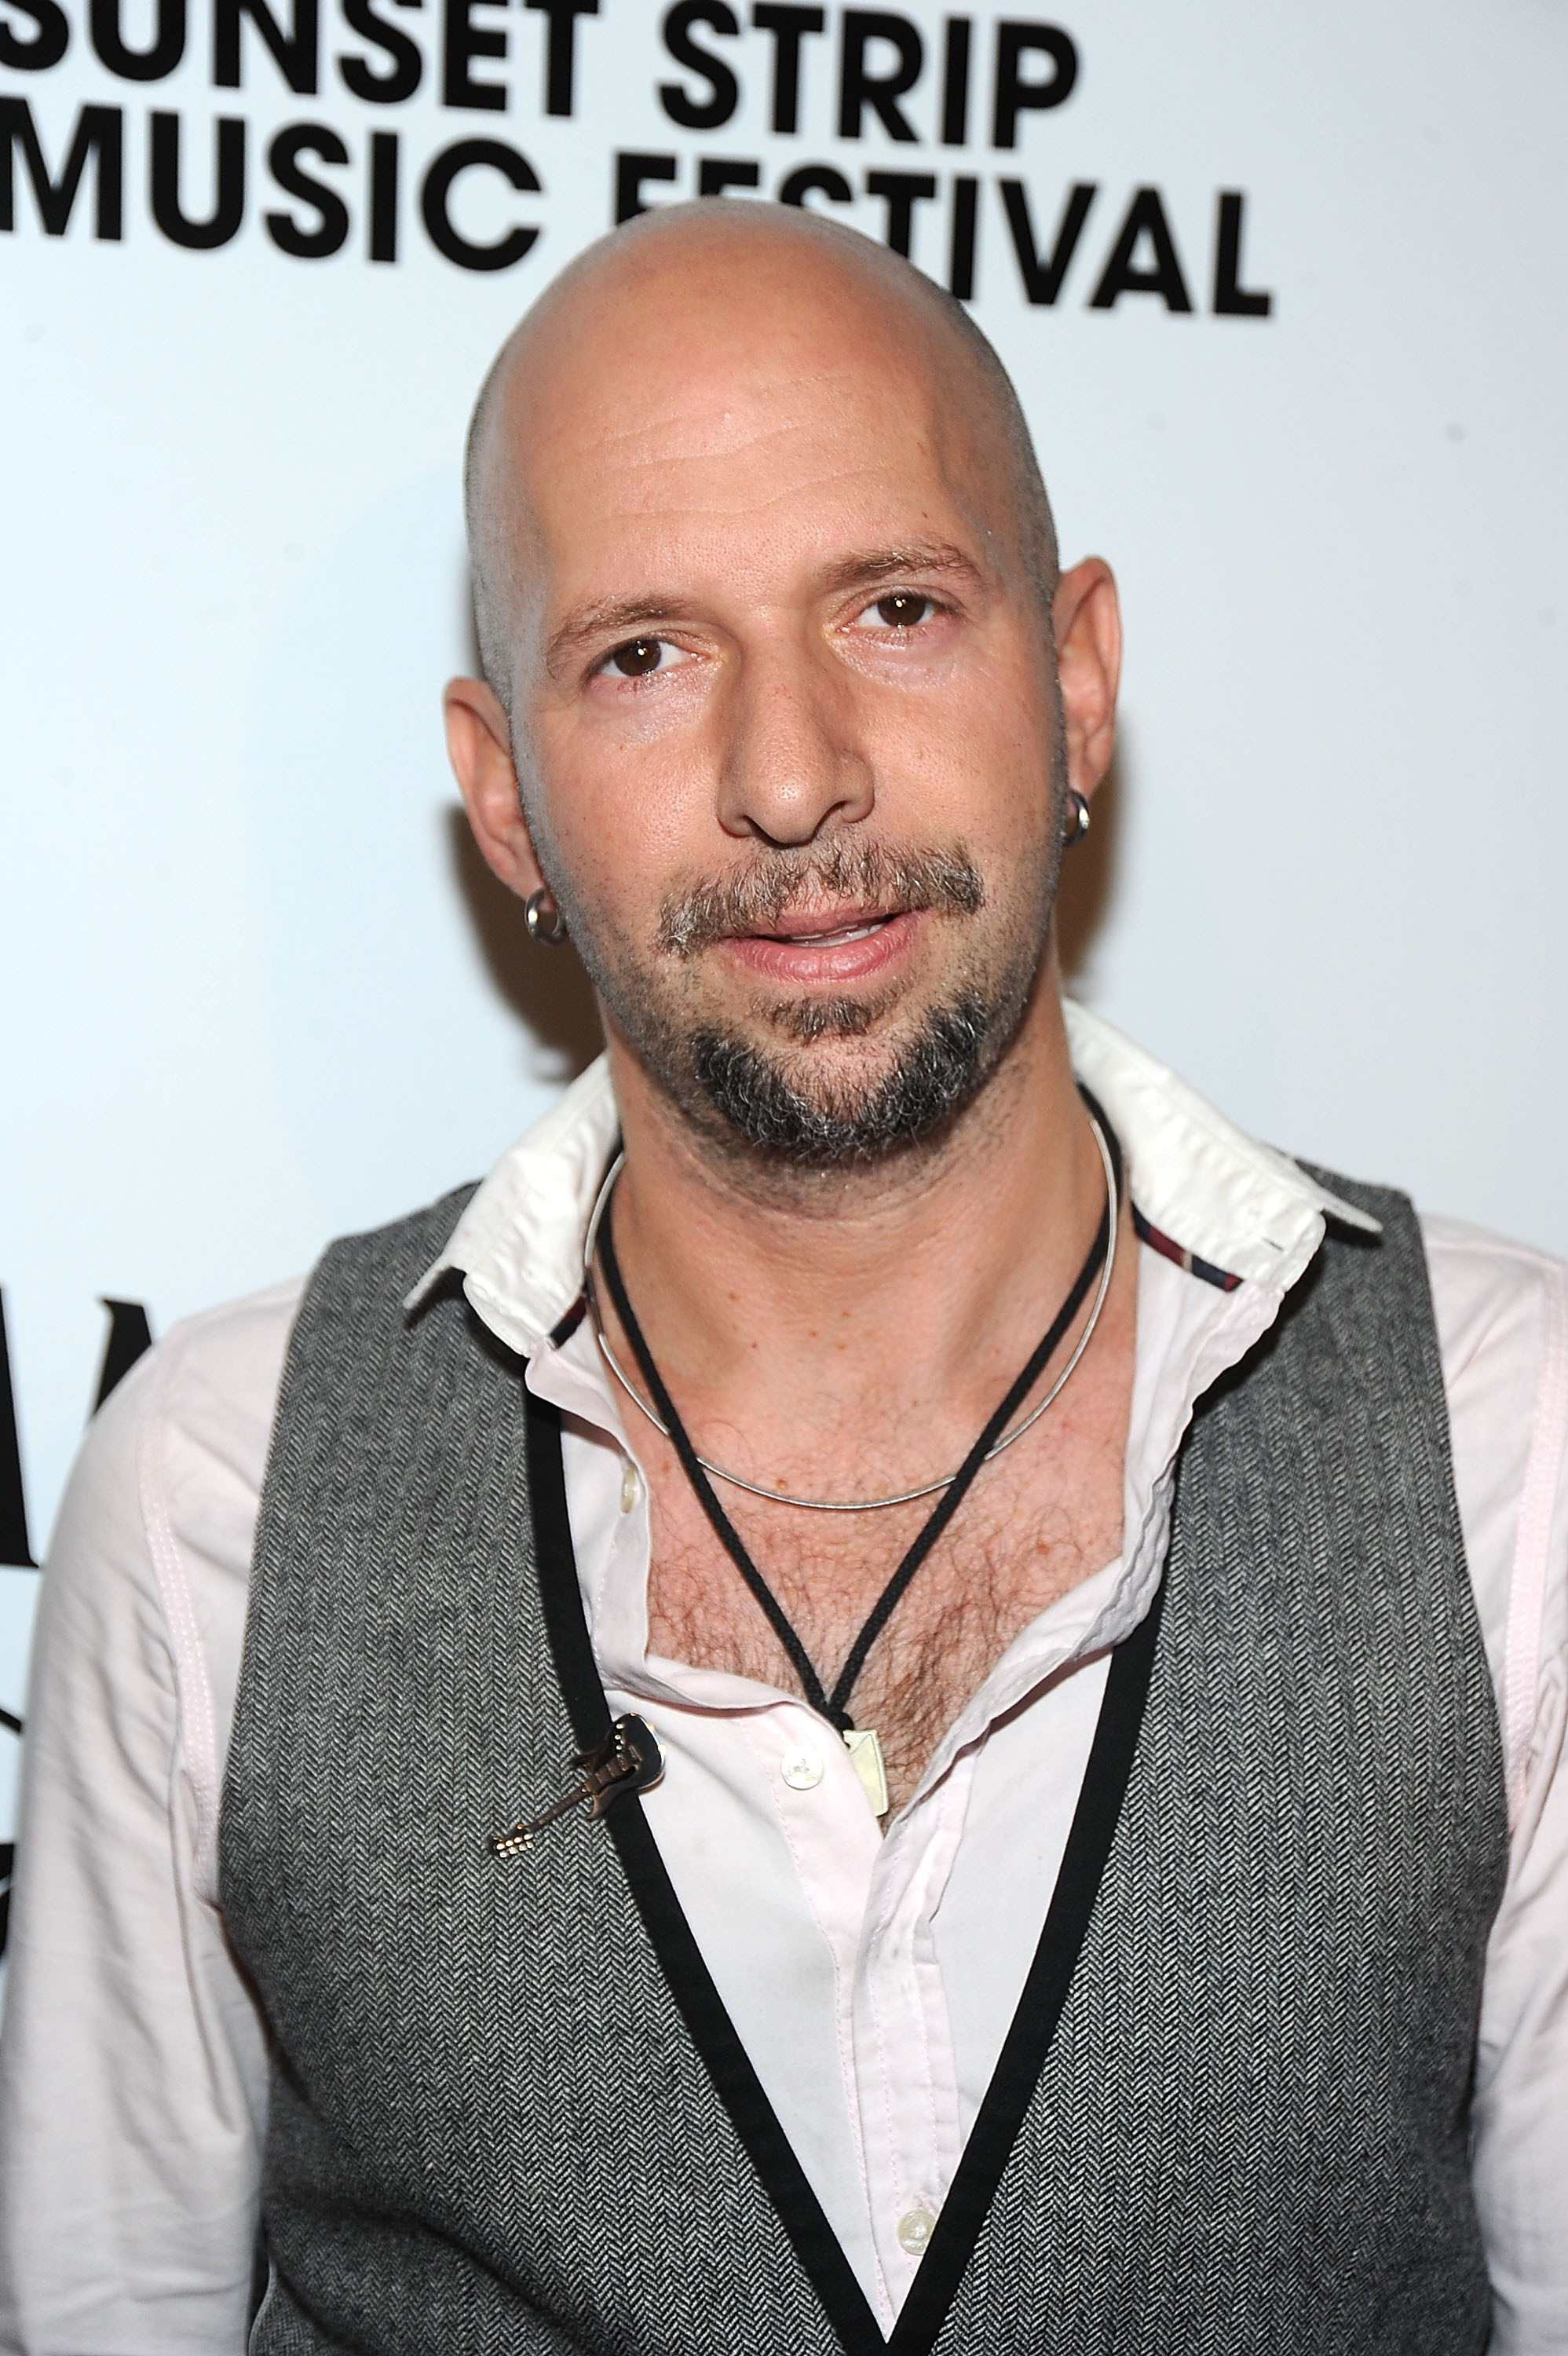 Darrow >> Neil Strauss | Known people - famous people news and biographies